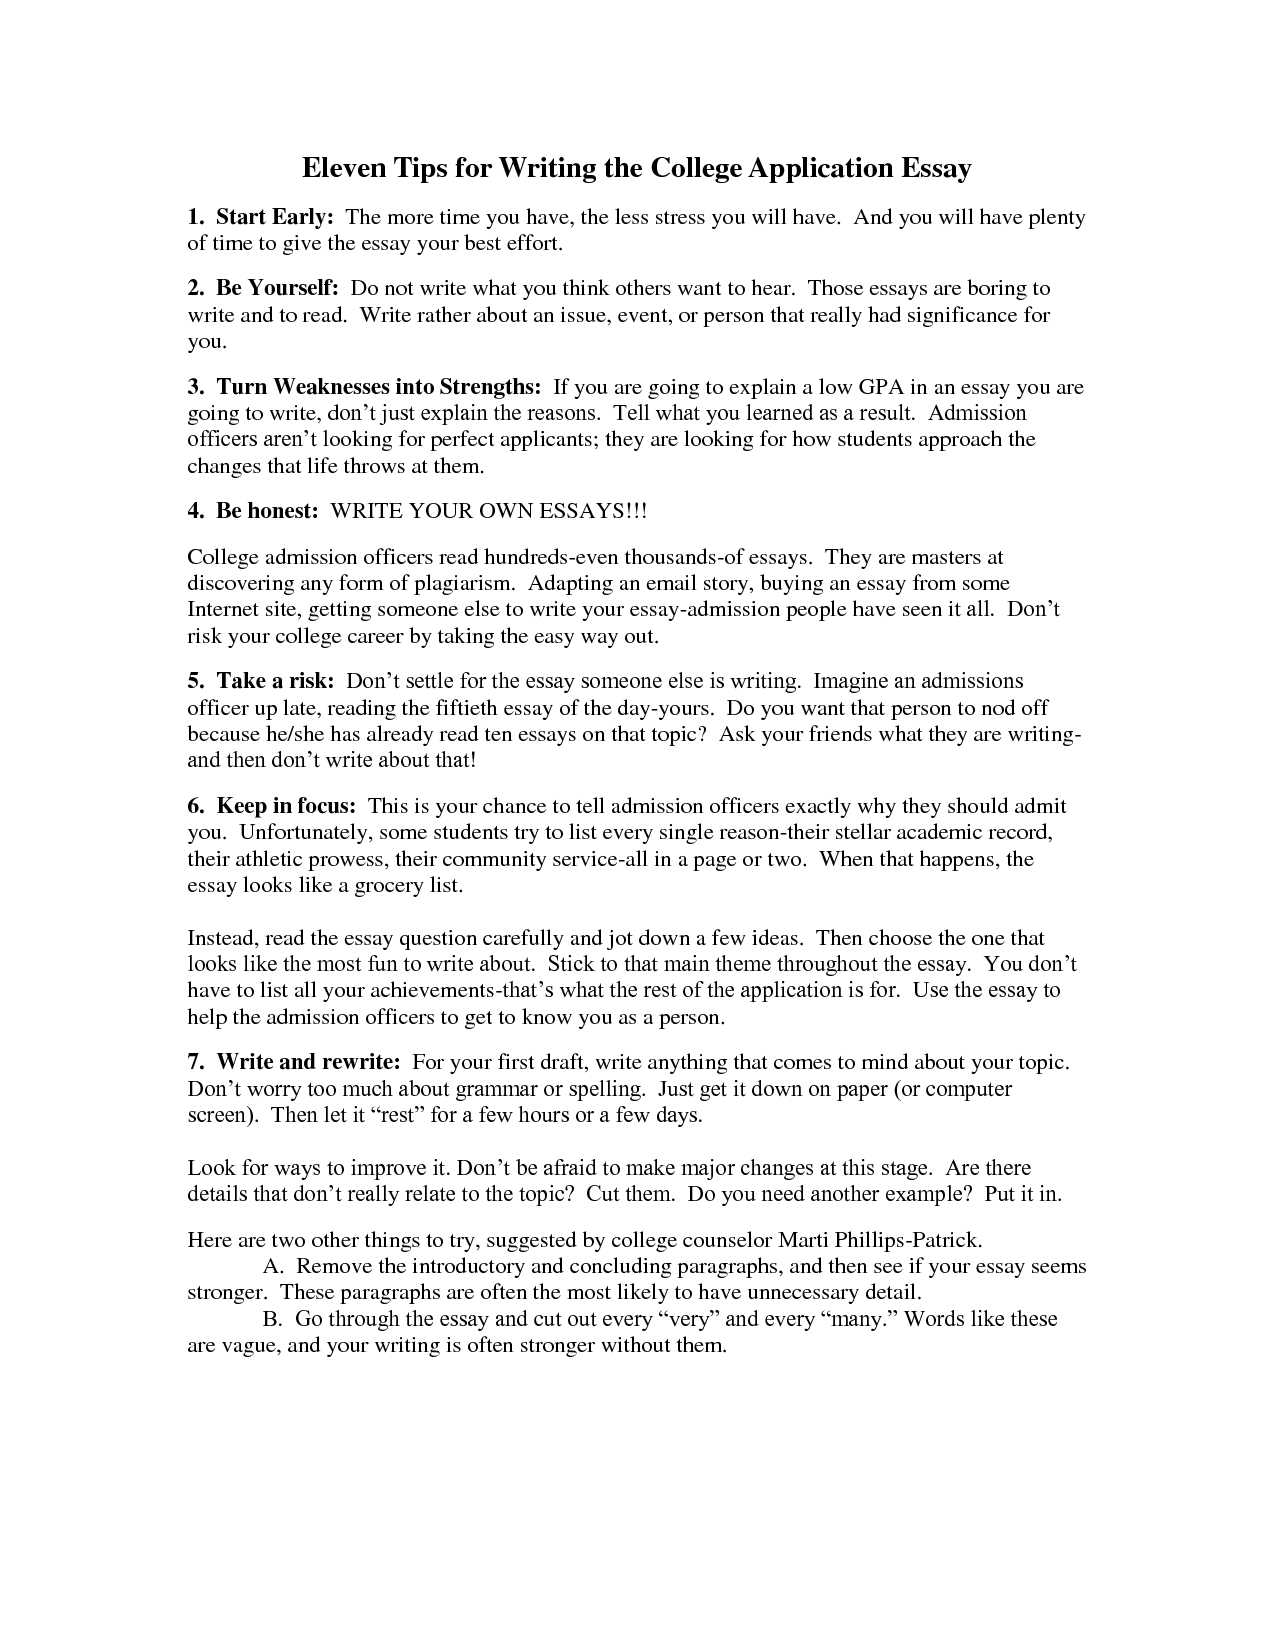 015 Tips For Writing College Application Essays Essay Example Fantastic Best Full